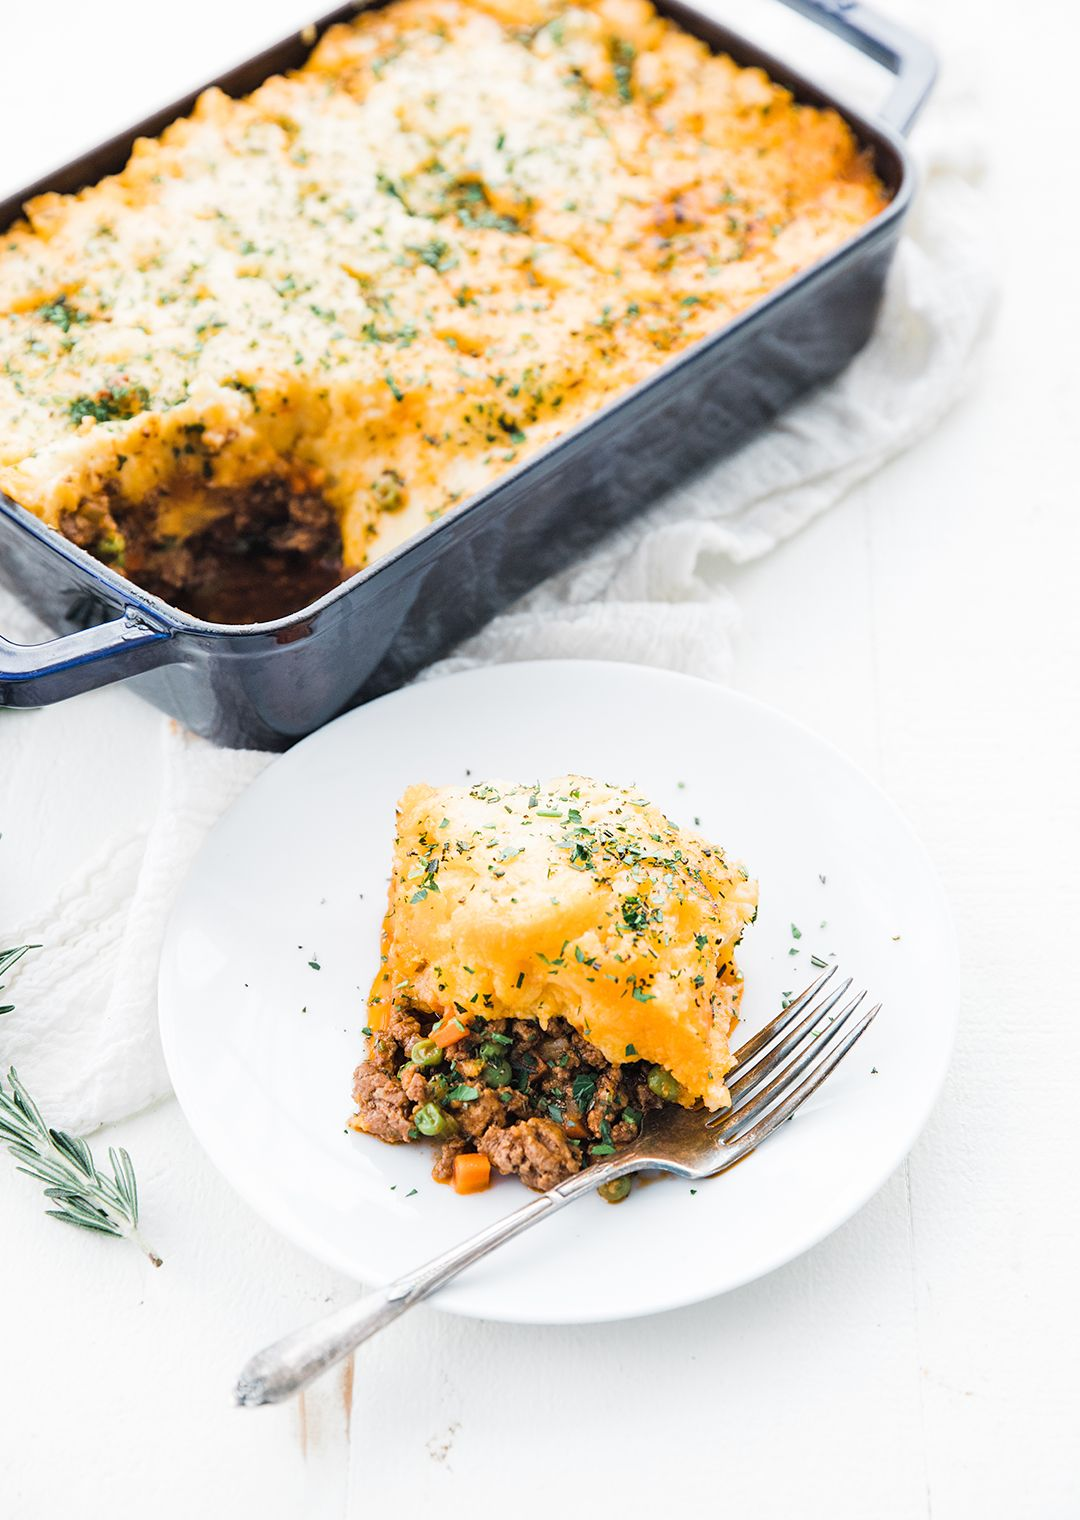 Shepherd S Pie This Classic Shepherd S Pie Made With Ground Lamb Vegetables And Mashed Potatoes Is Absolutely Delicio Classic Food Lamb Recipes Comfort Food